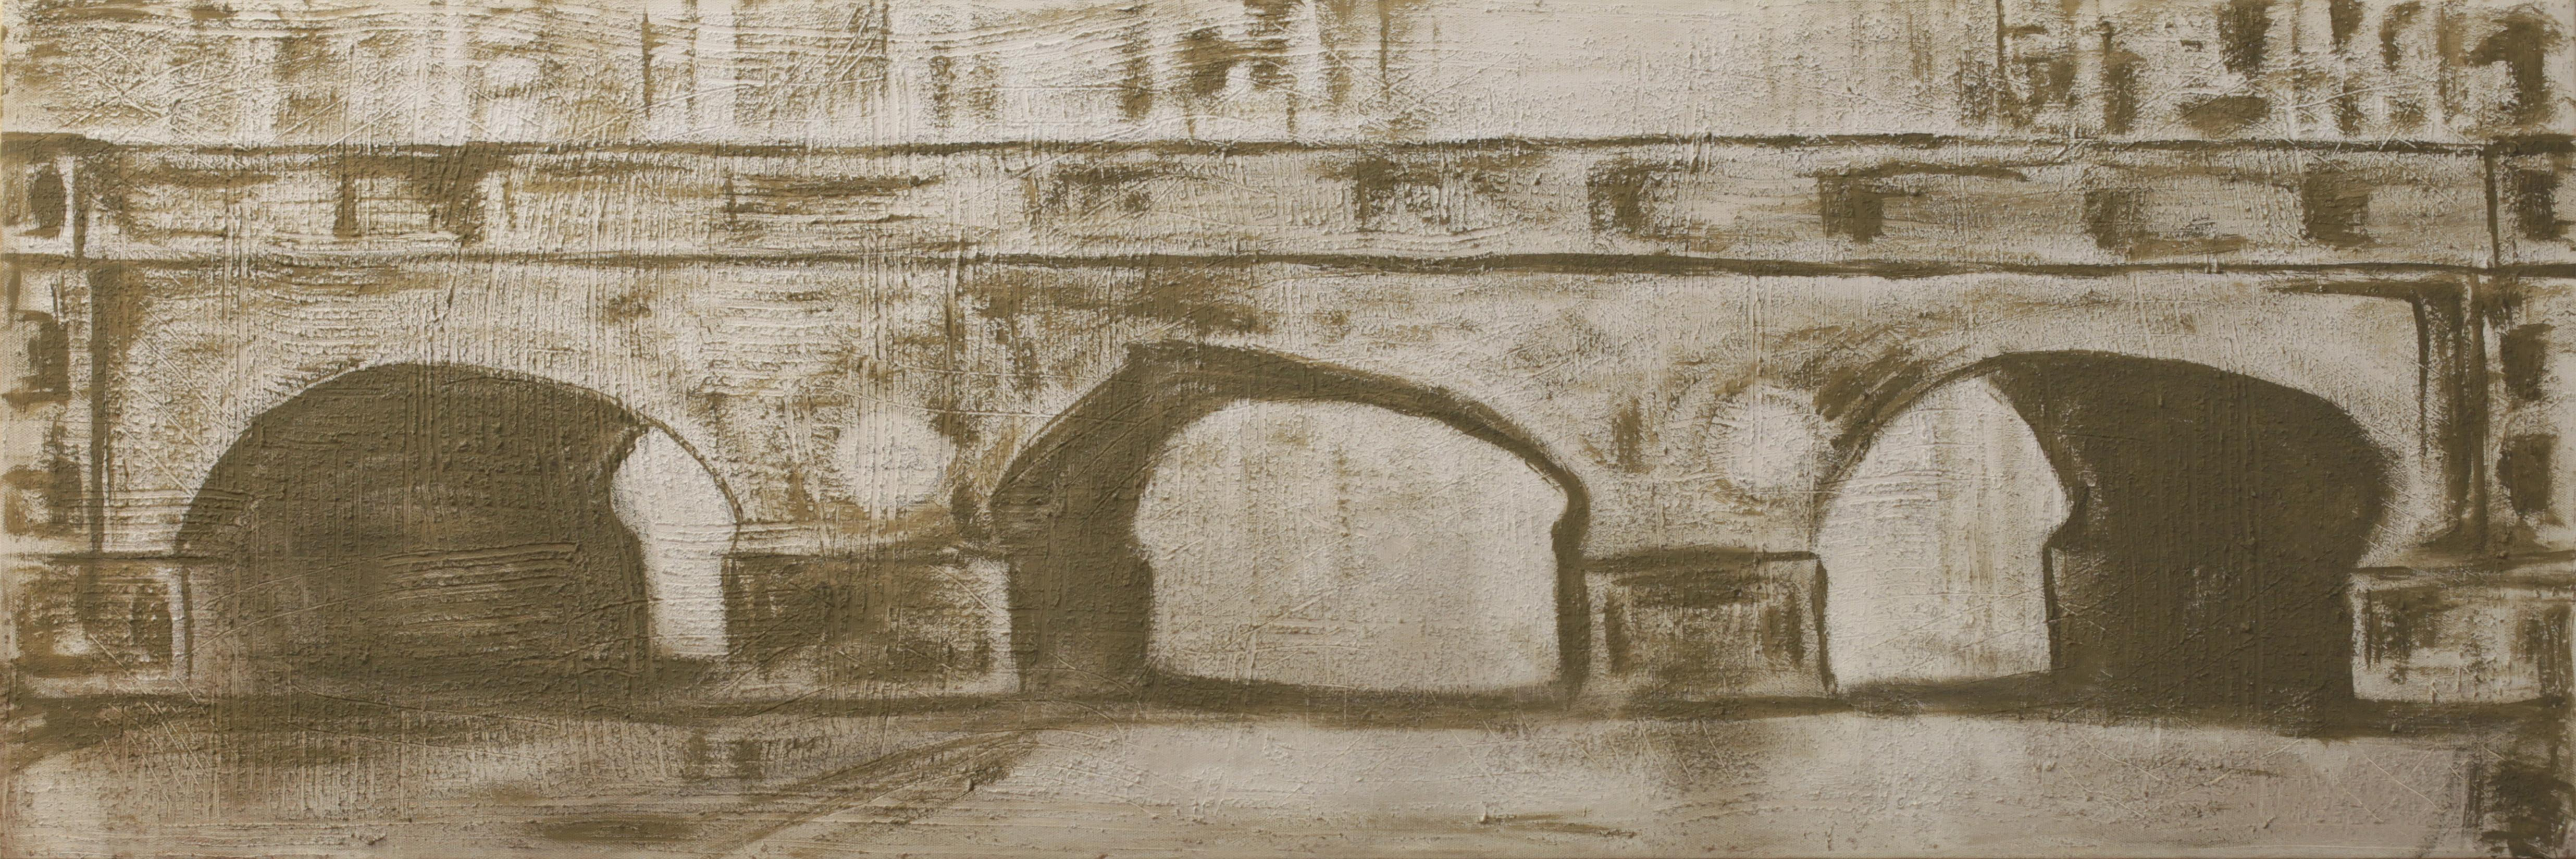 Bridge, Contemporary Abstract Art Acrylic Painting Brown Minimalist Architecture